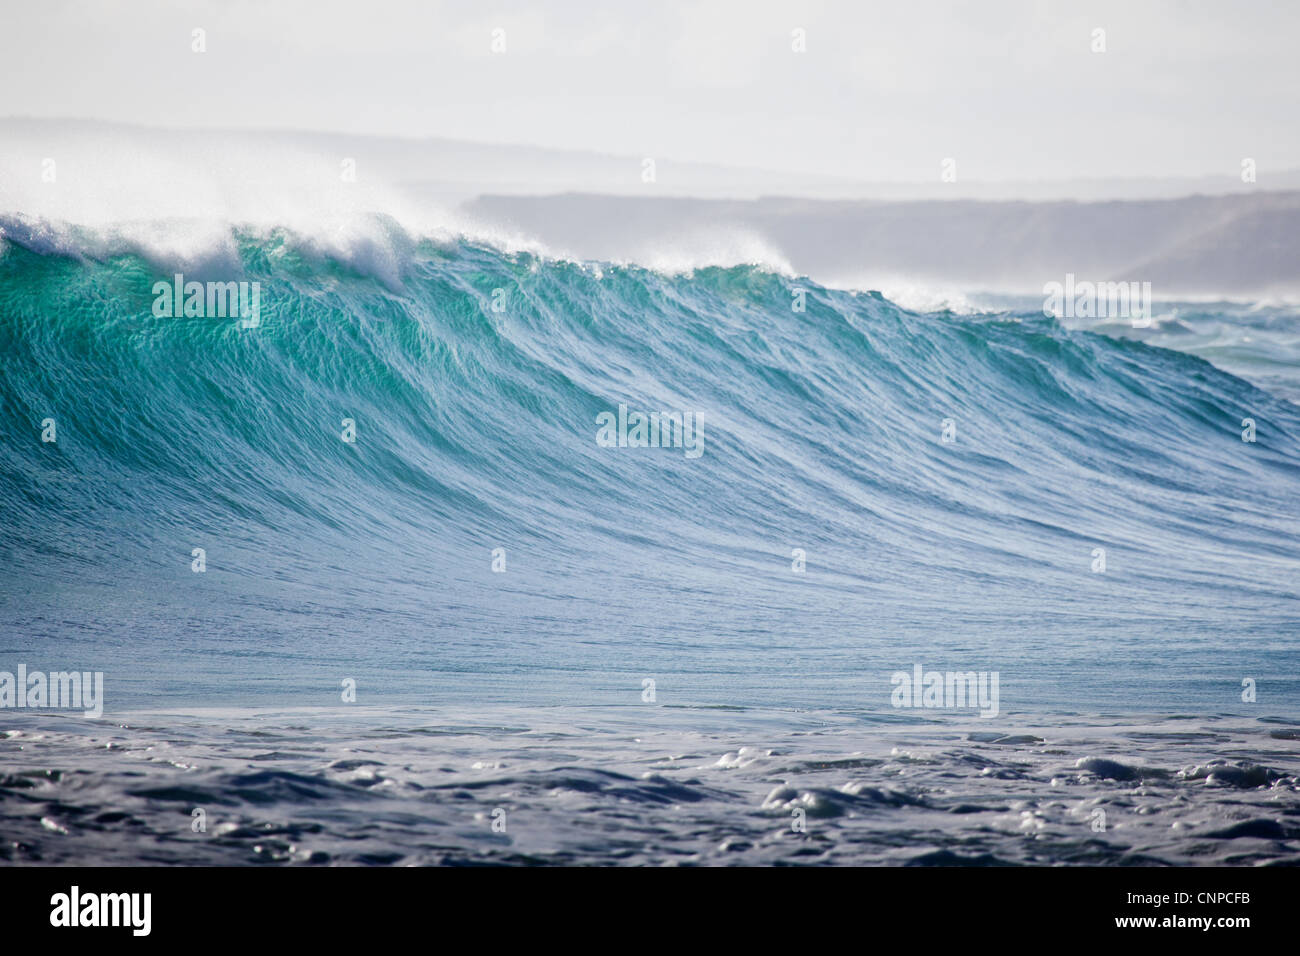 Wave breaking at Greenly Beach South Australia Stock Photo